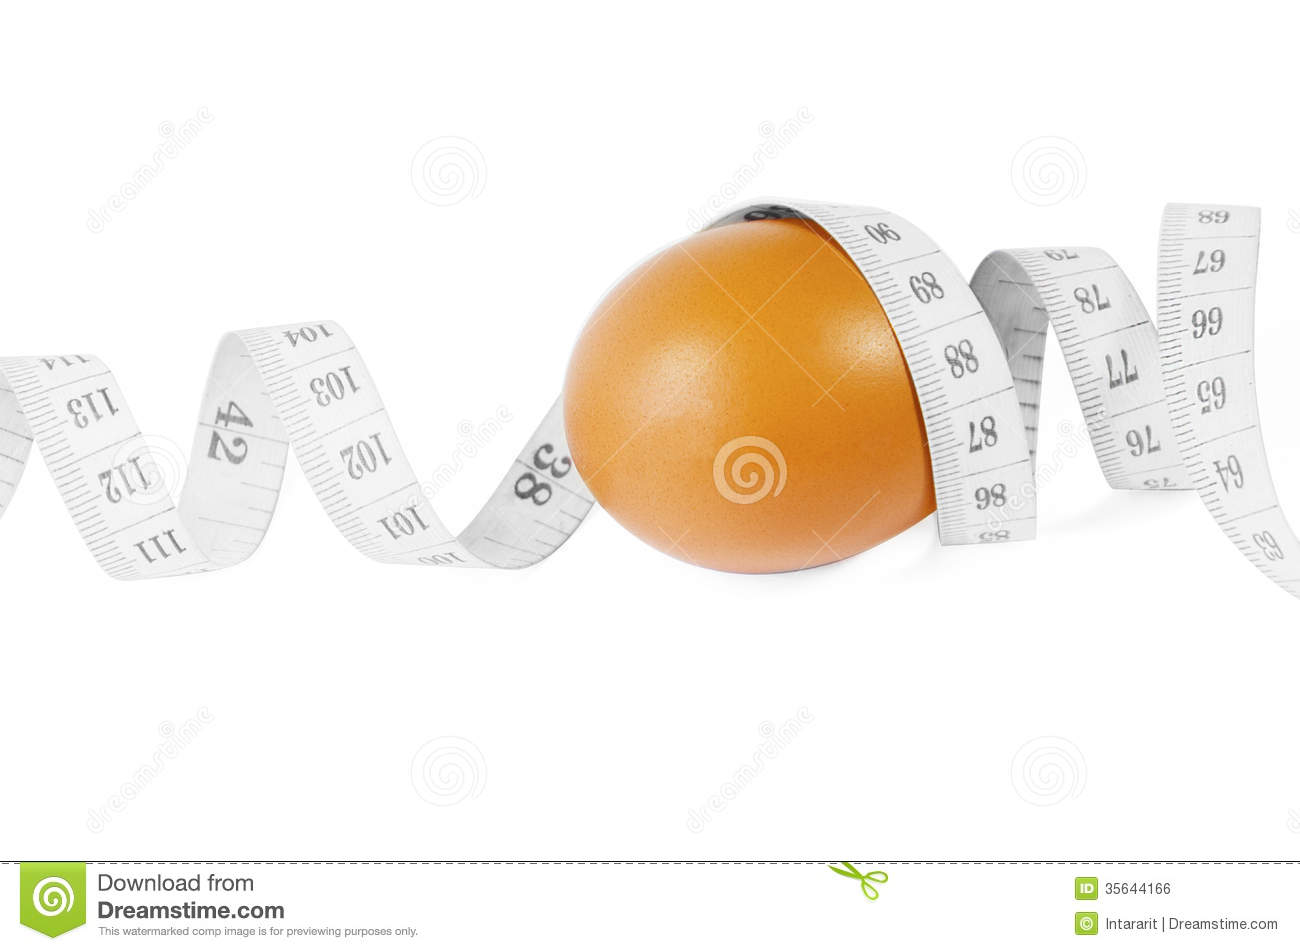 Eggs measure